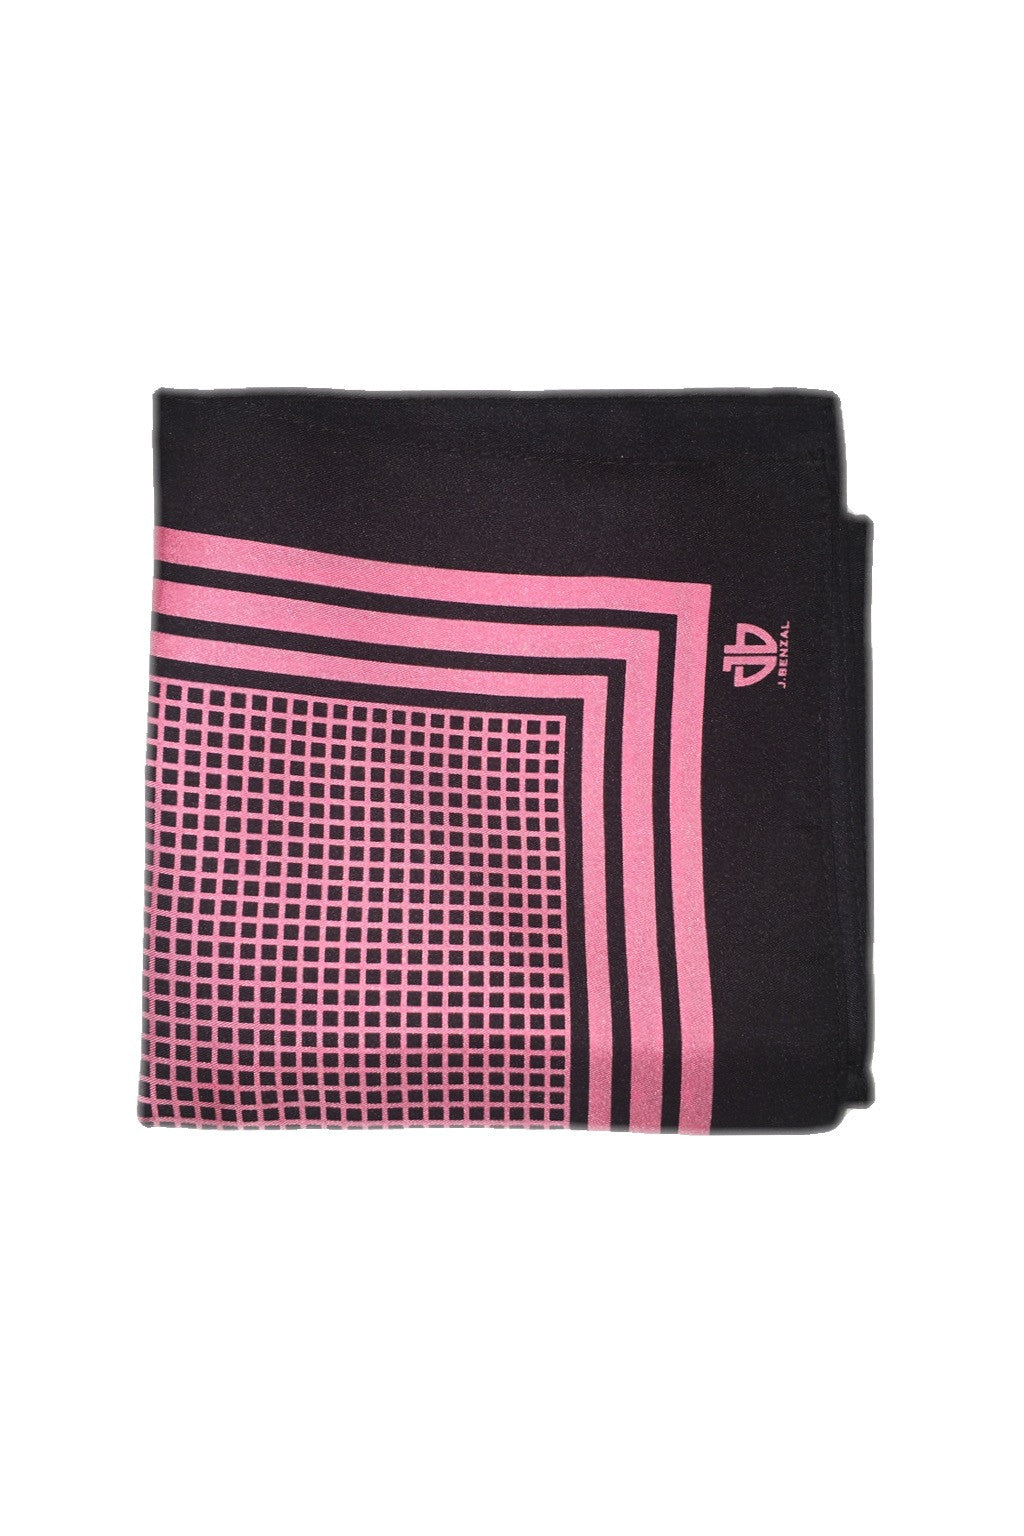 Black w/ Pink Pocket Square